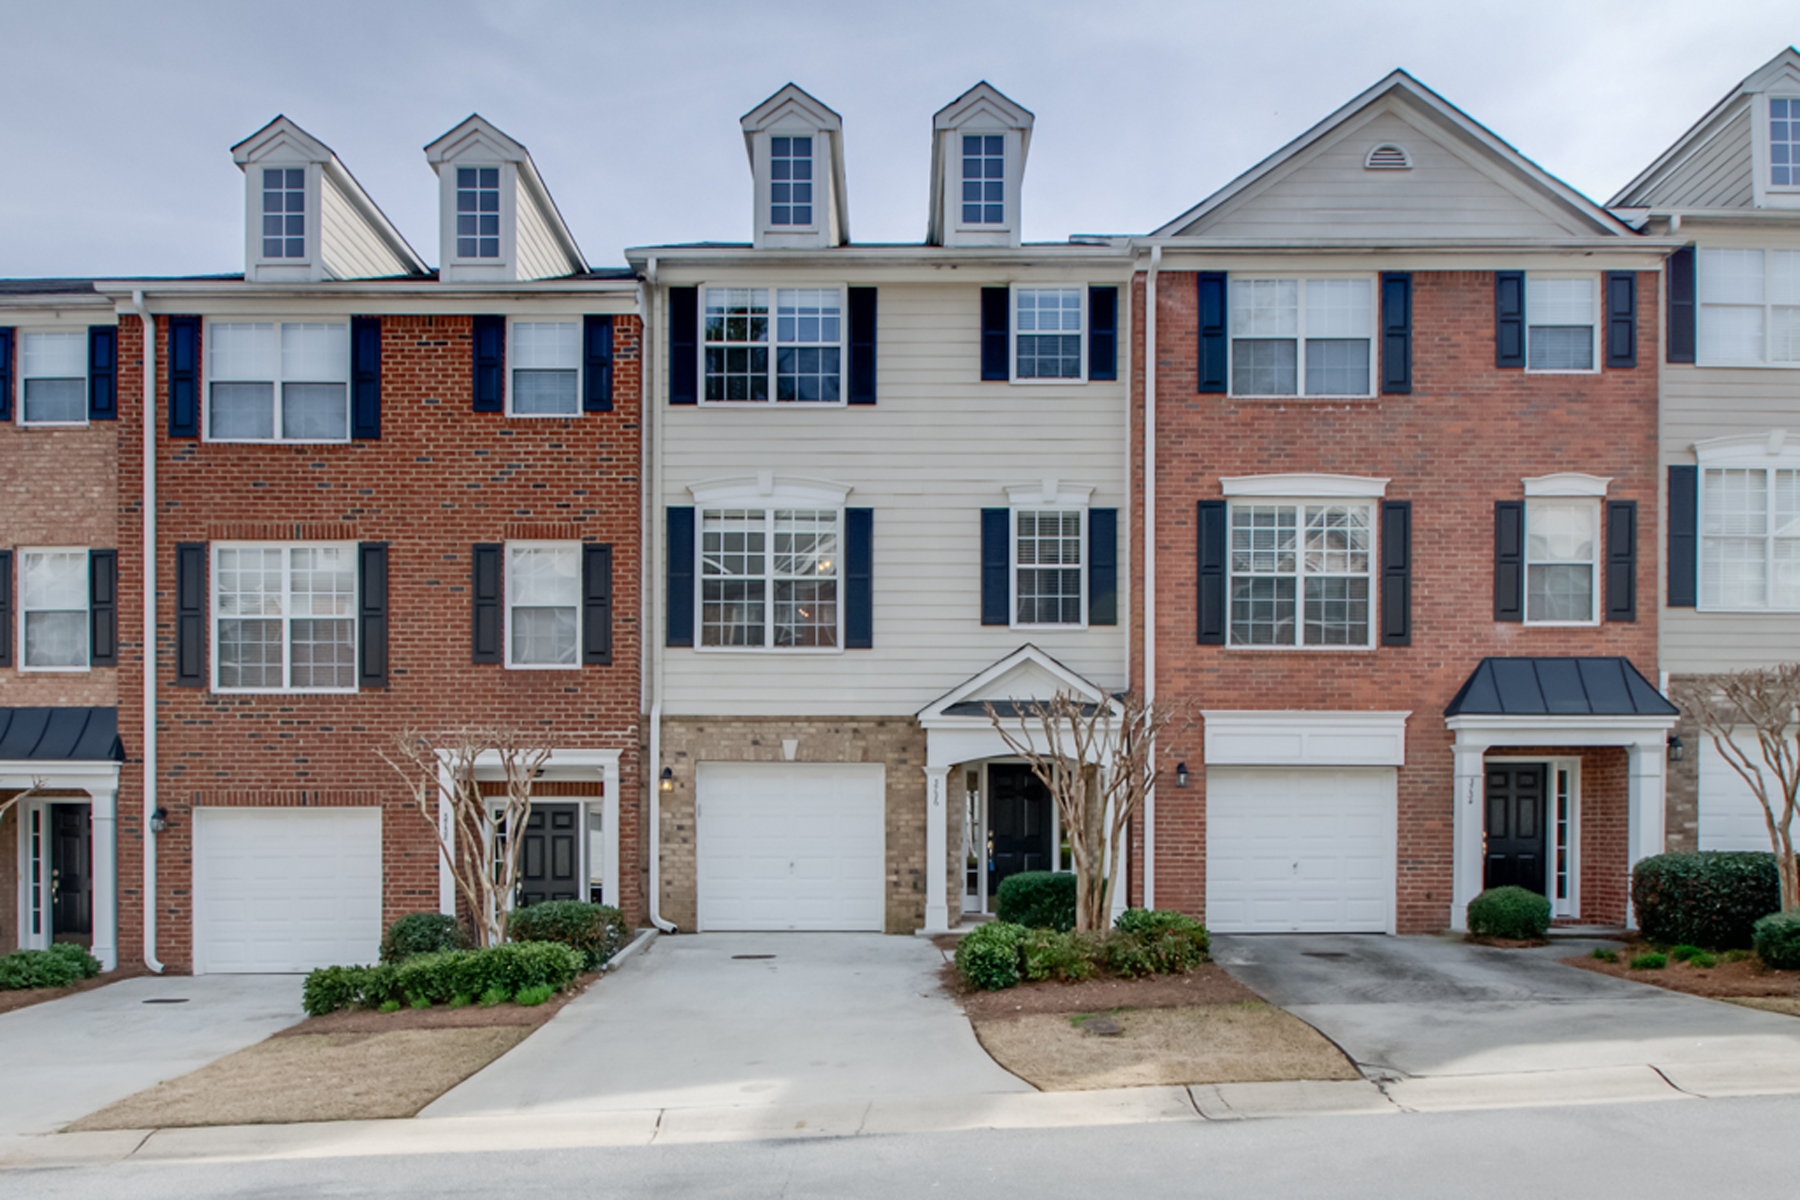 Townhouse for Sale at Inviting Three Level Townhome 3736 Chattahoochee Summit Drive SE Atlanta, Georgia, 30339 United States